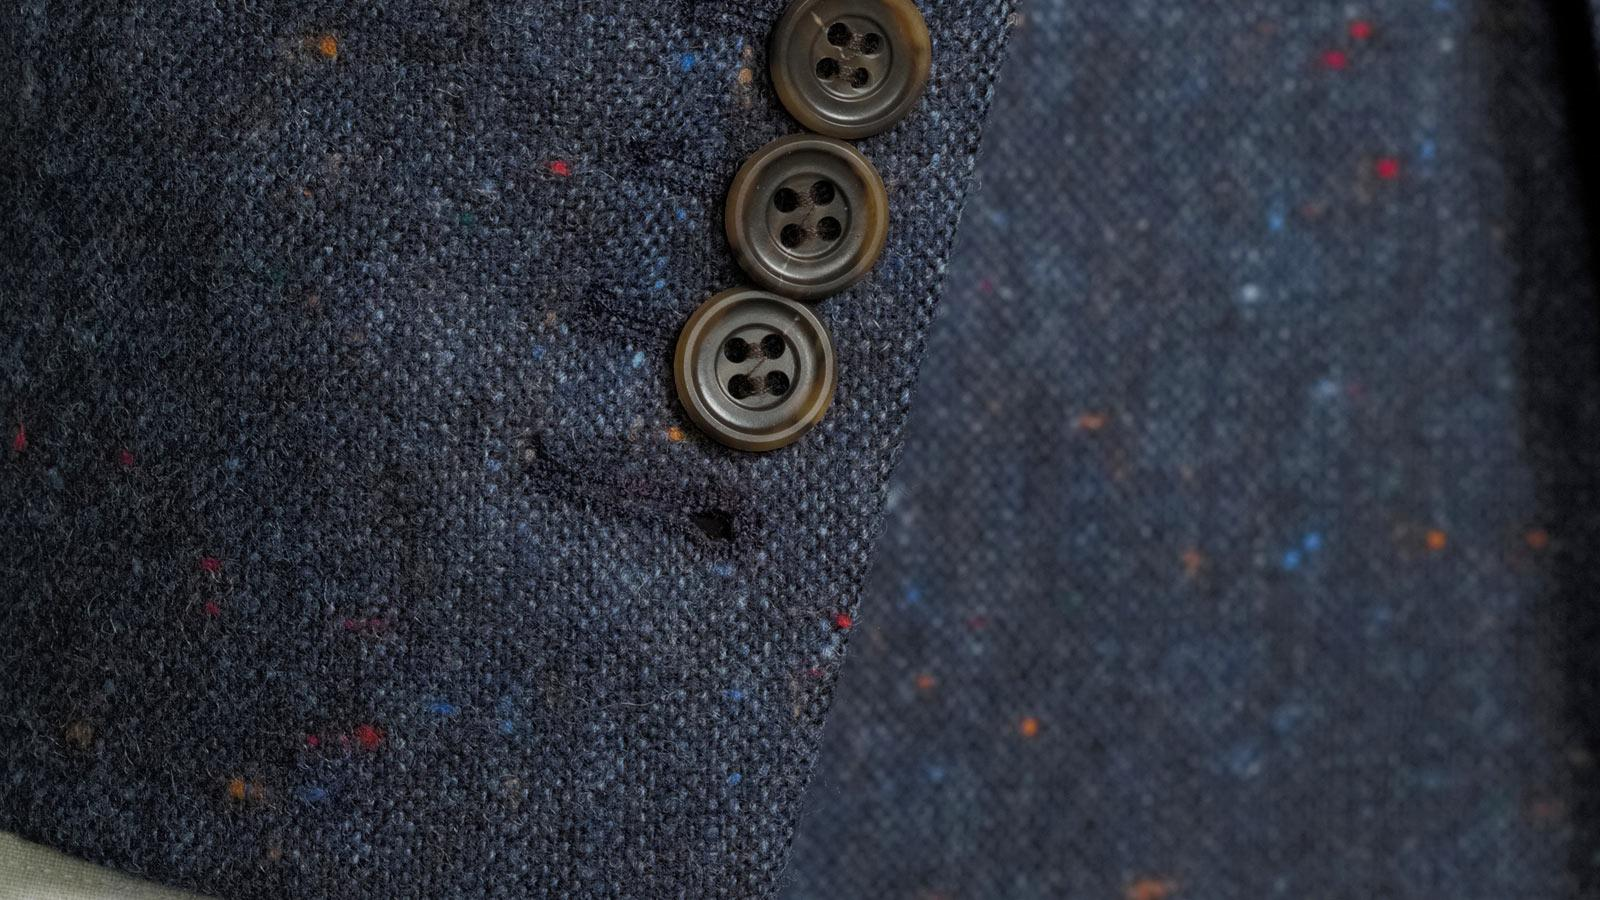 Blue Donegal Tweed Suit - slider image 1